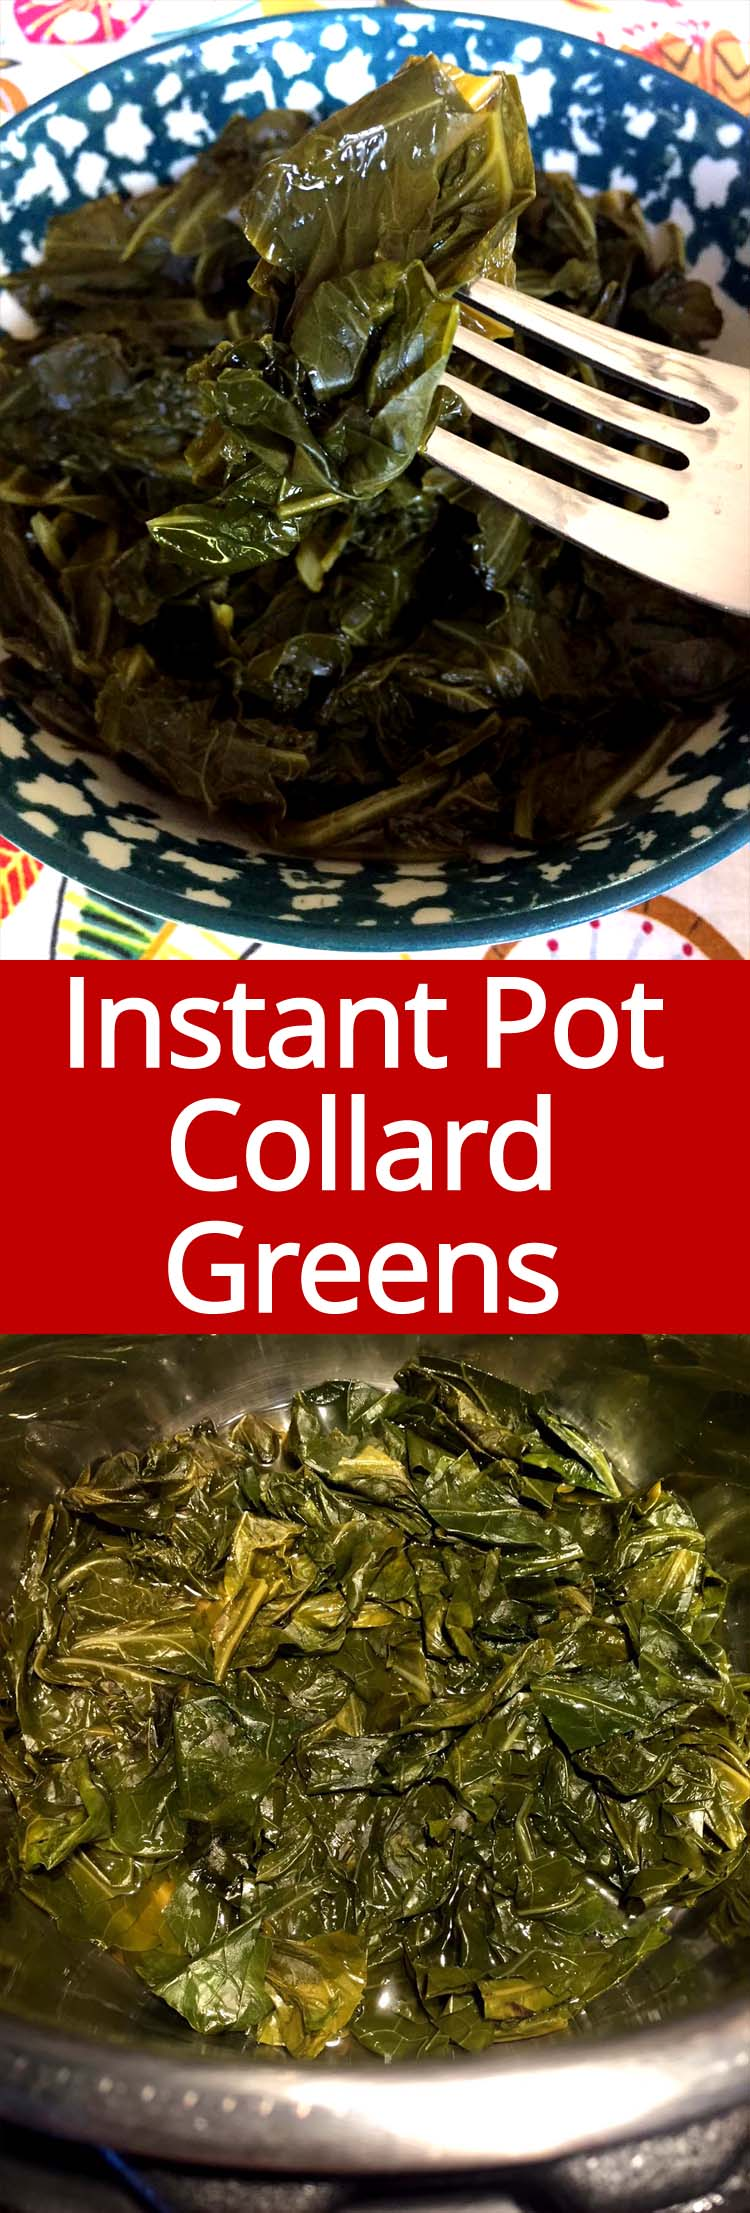 These Instant Pot collard greens are mouthwatering! This is the only way I'll make collard greens for now on!